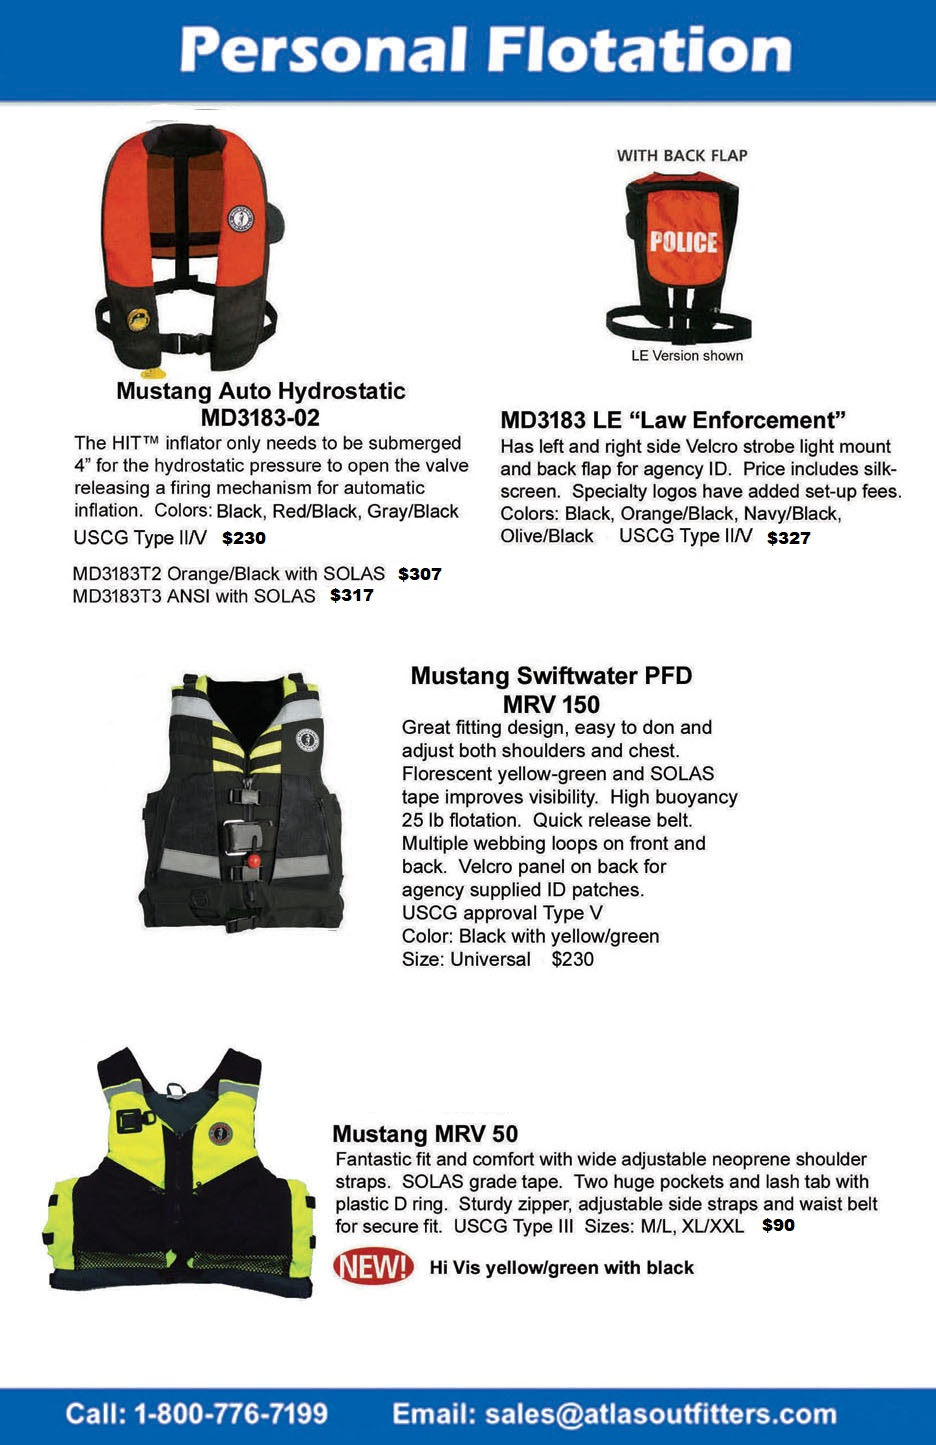 PFD, life jackets from Mustang Survival